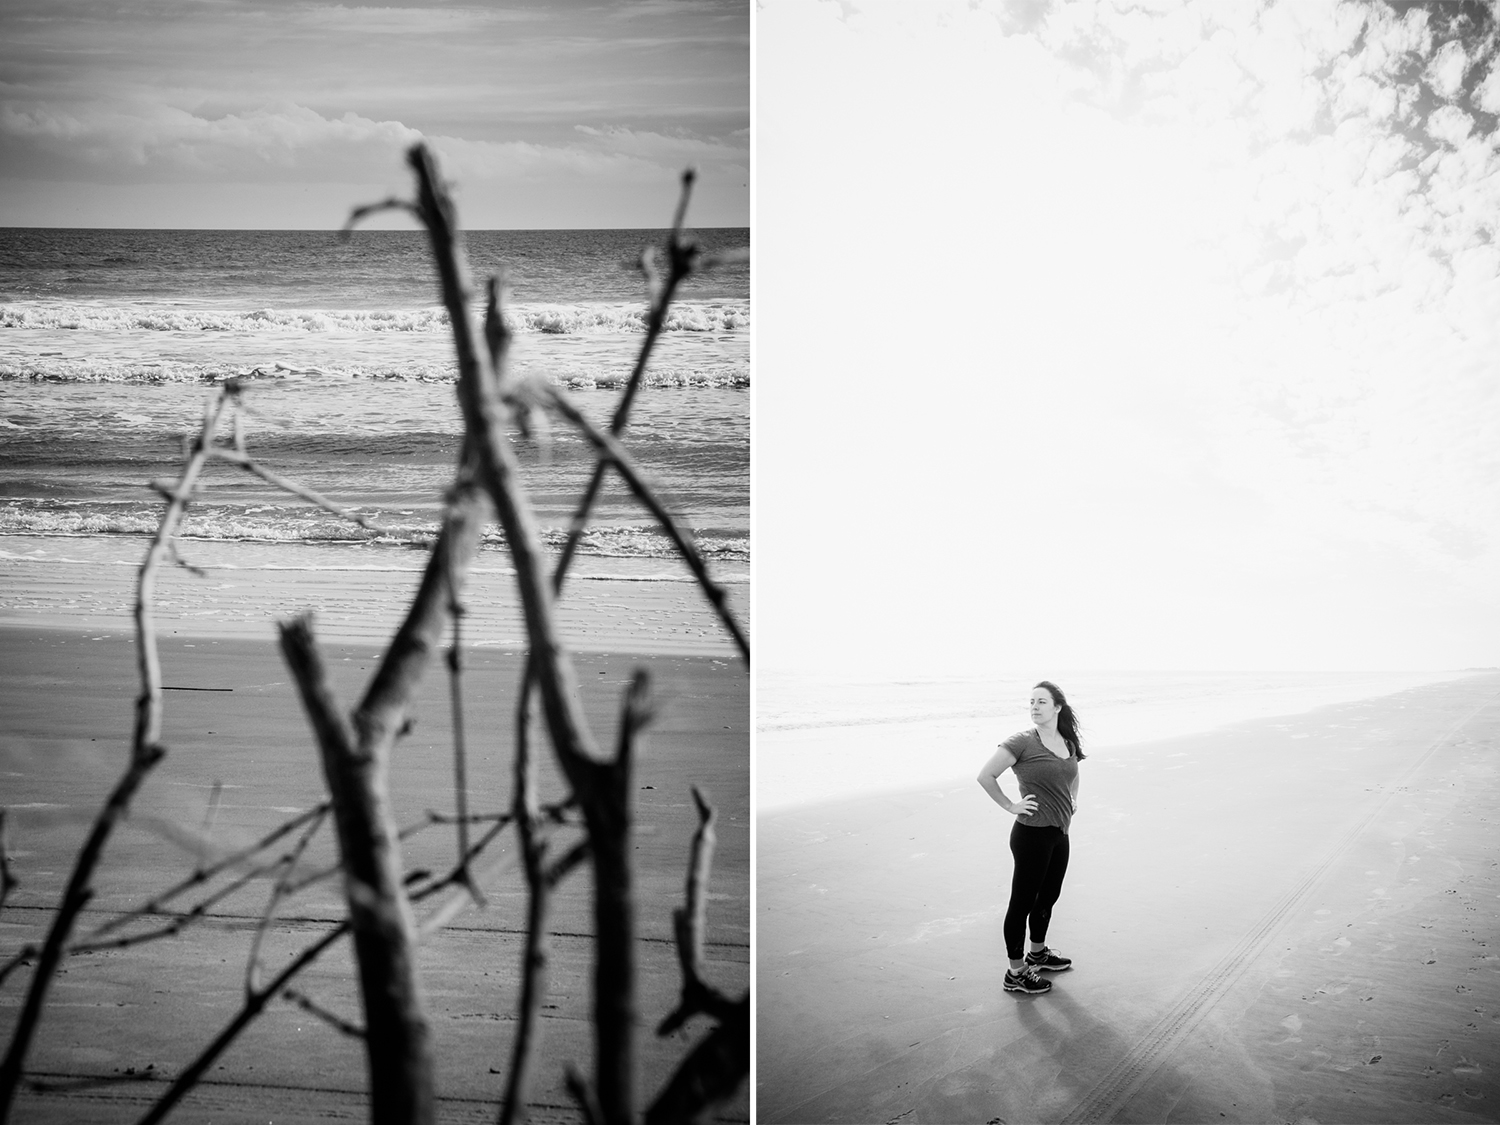 katharine-friedgen-photography-beach-14